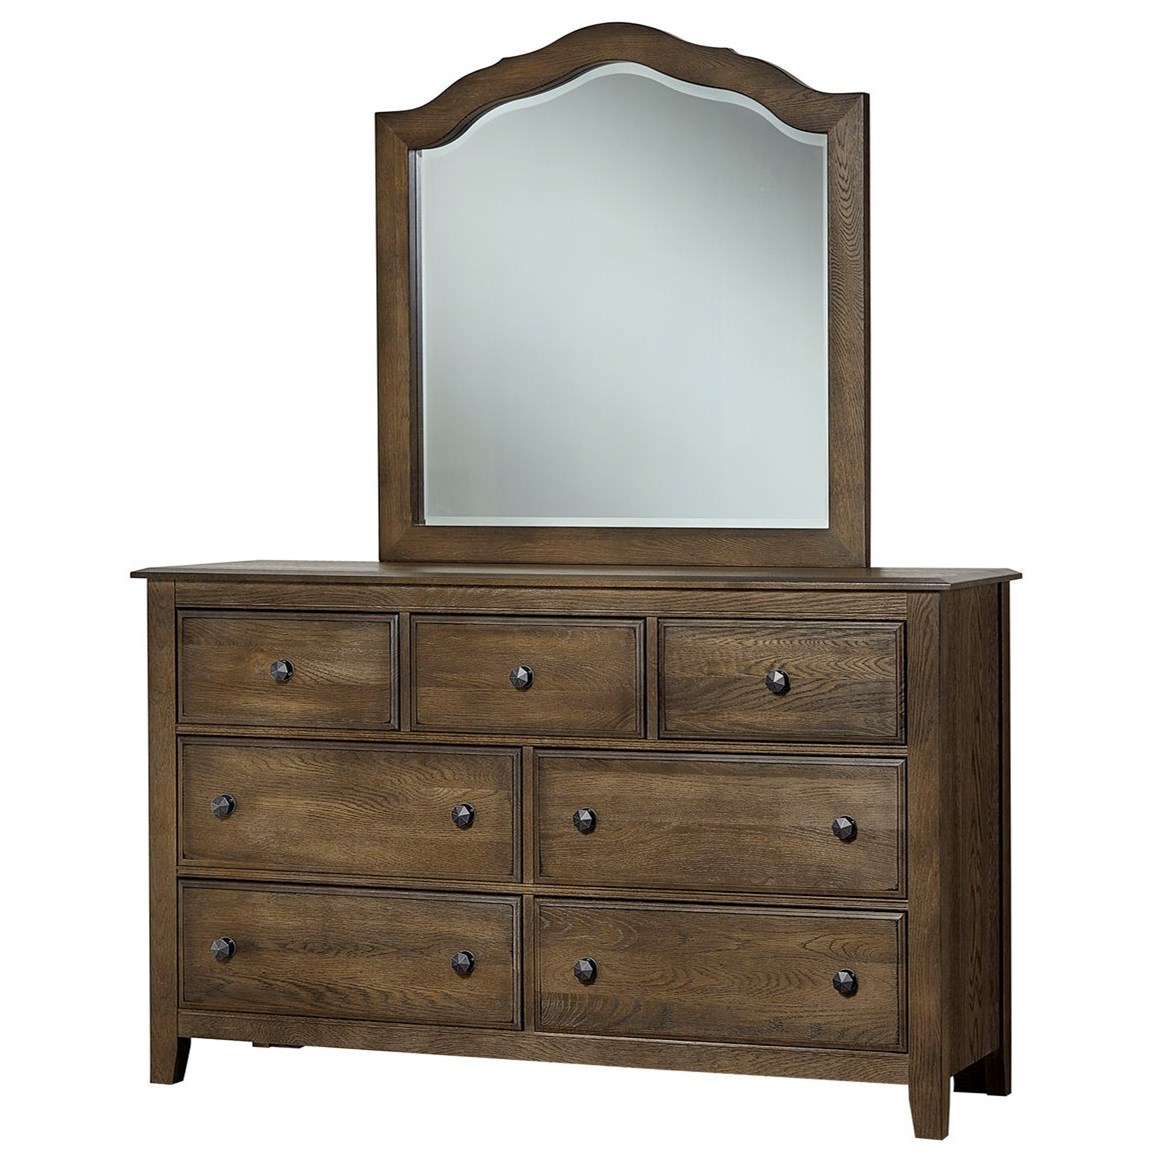 Artisan Choices Loft Triple Dresser & Tall Arched Mirror by Artisan & Post at Rooms and Rest